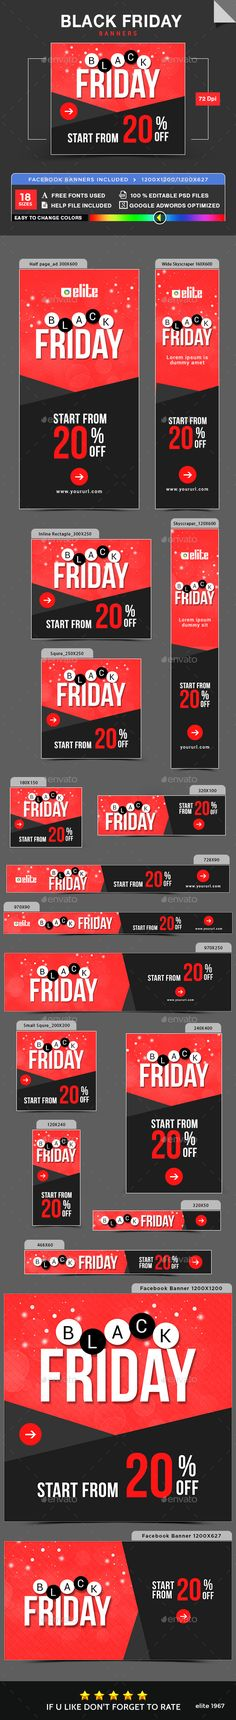 Black Friday Banners  Psd Templates Black Friday And Banners